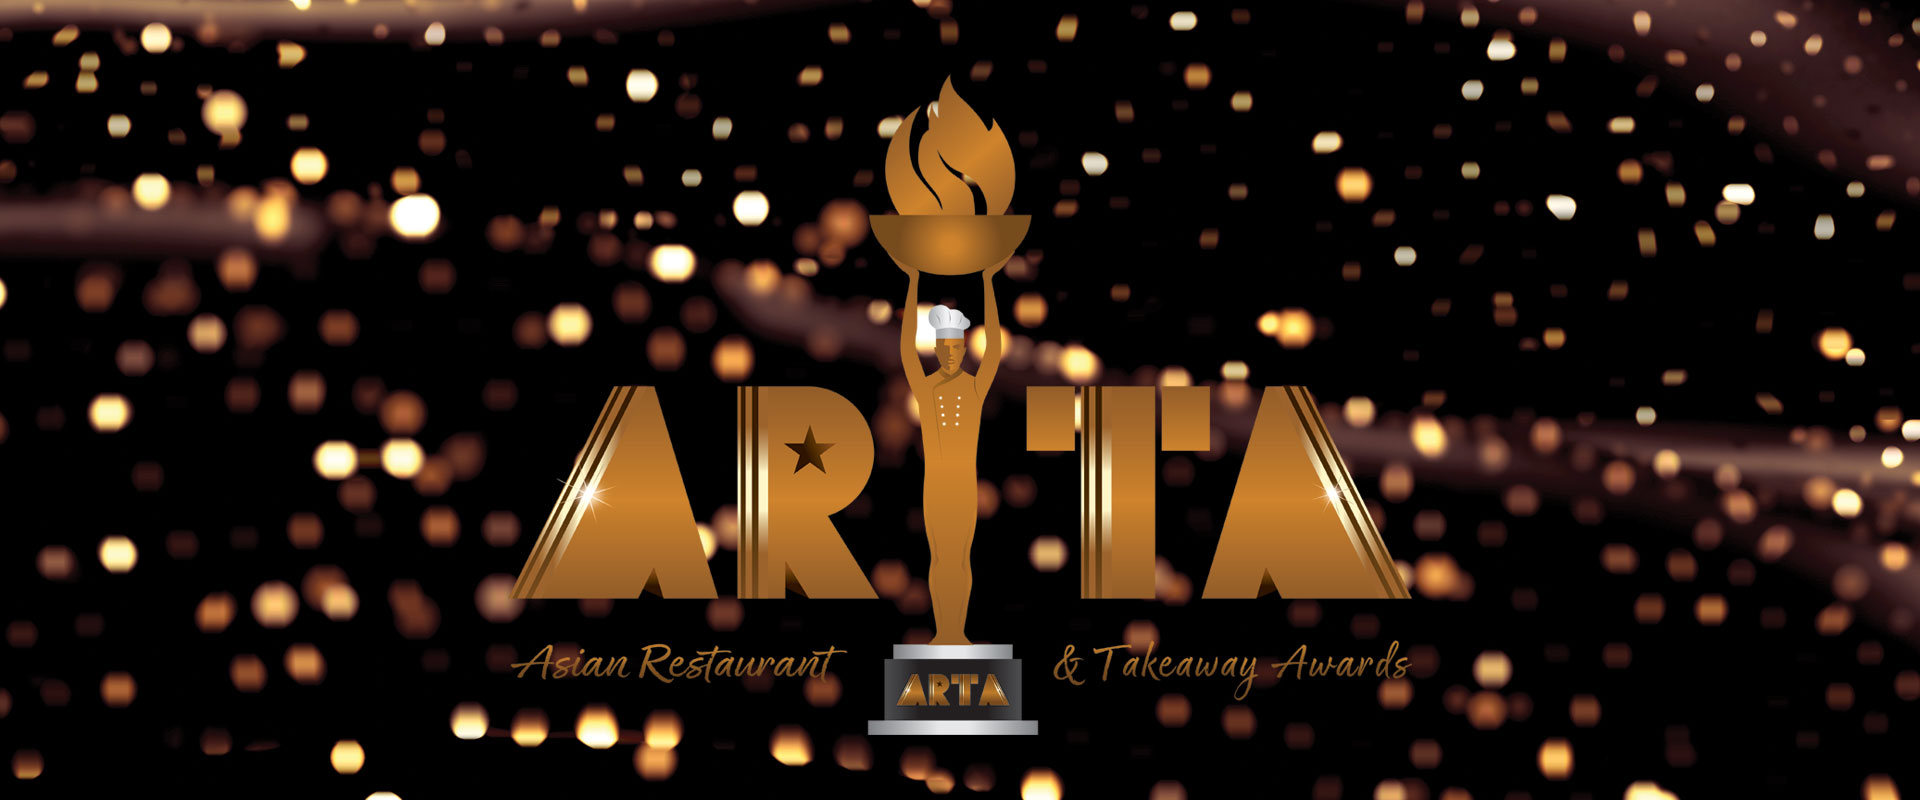 Asian Restaurant & Takeaway Awards (ARTA)